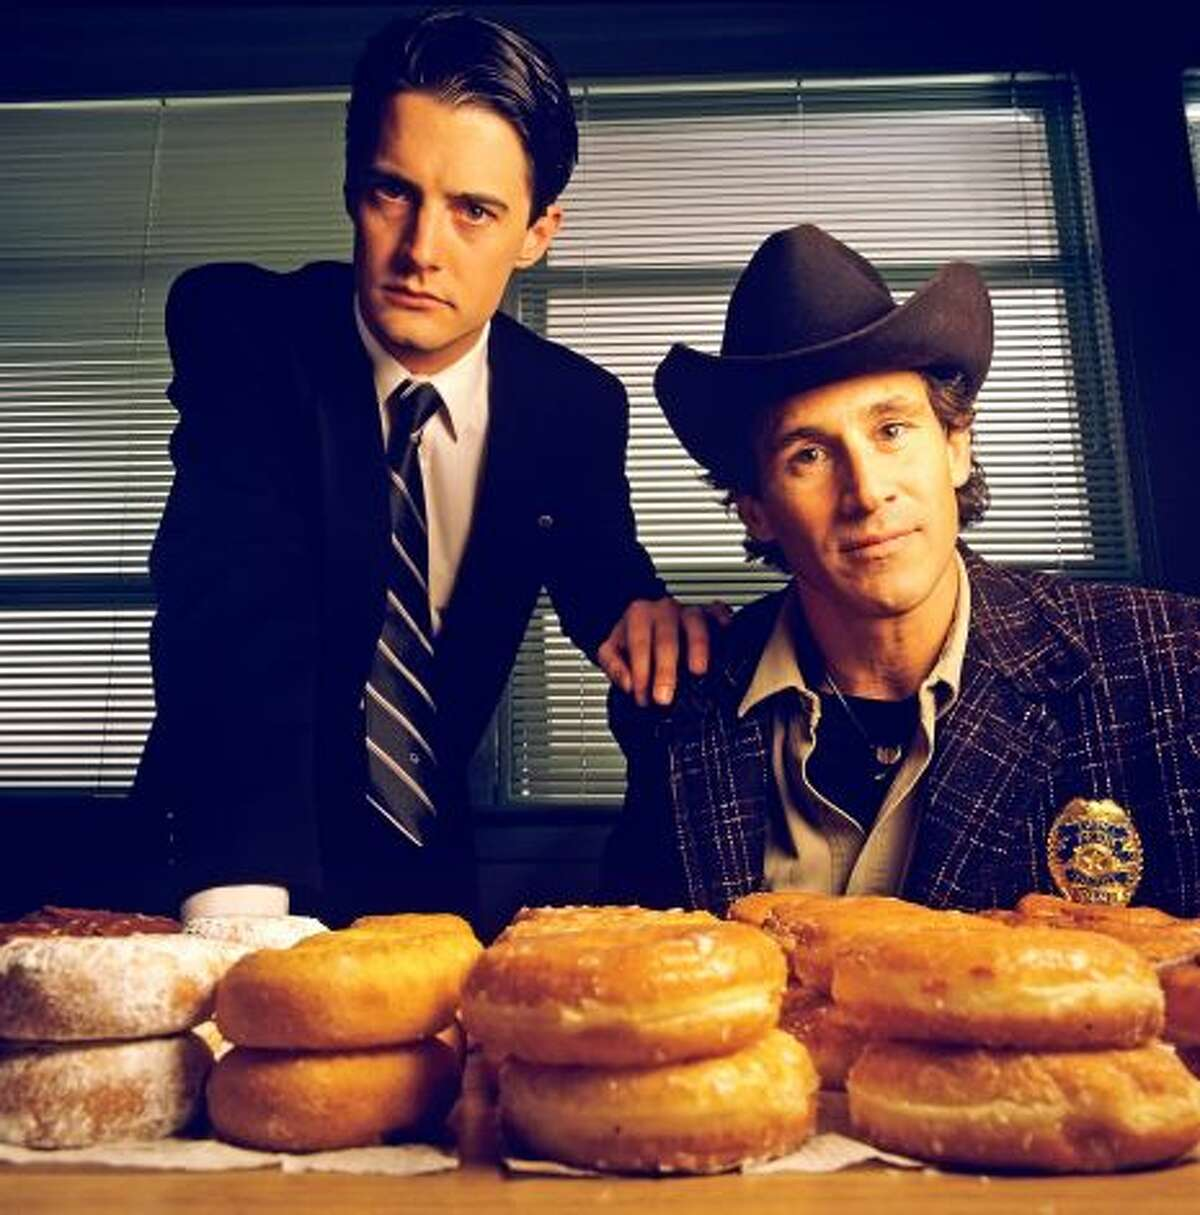 Twin Peaks Showtime brought back David Lynch's surreal mystery drama, Twin Peaks in 2017. The first two original seasons of the show mystified and captivated America back in the early 90s.